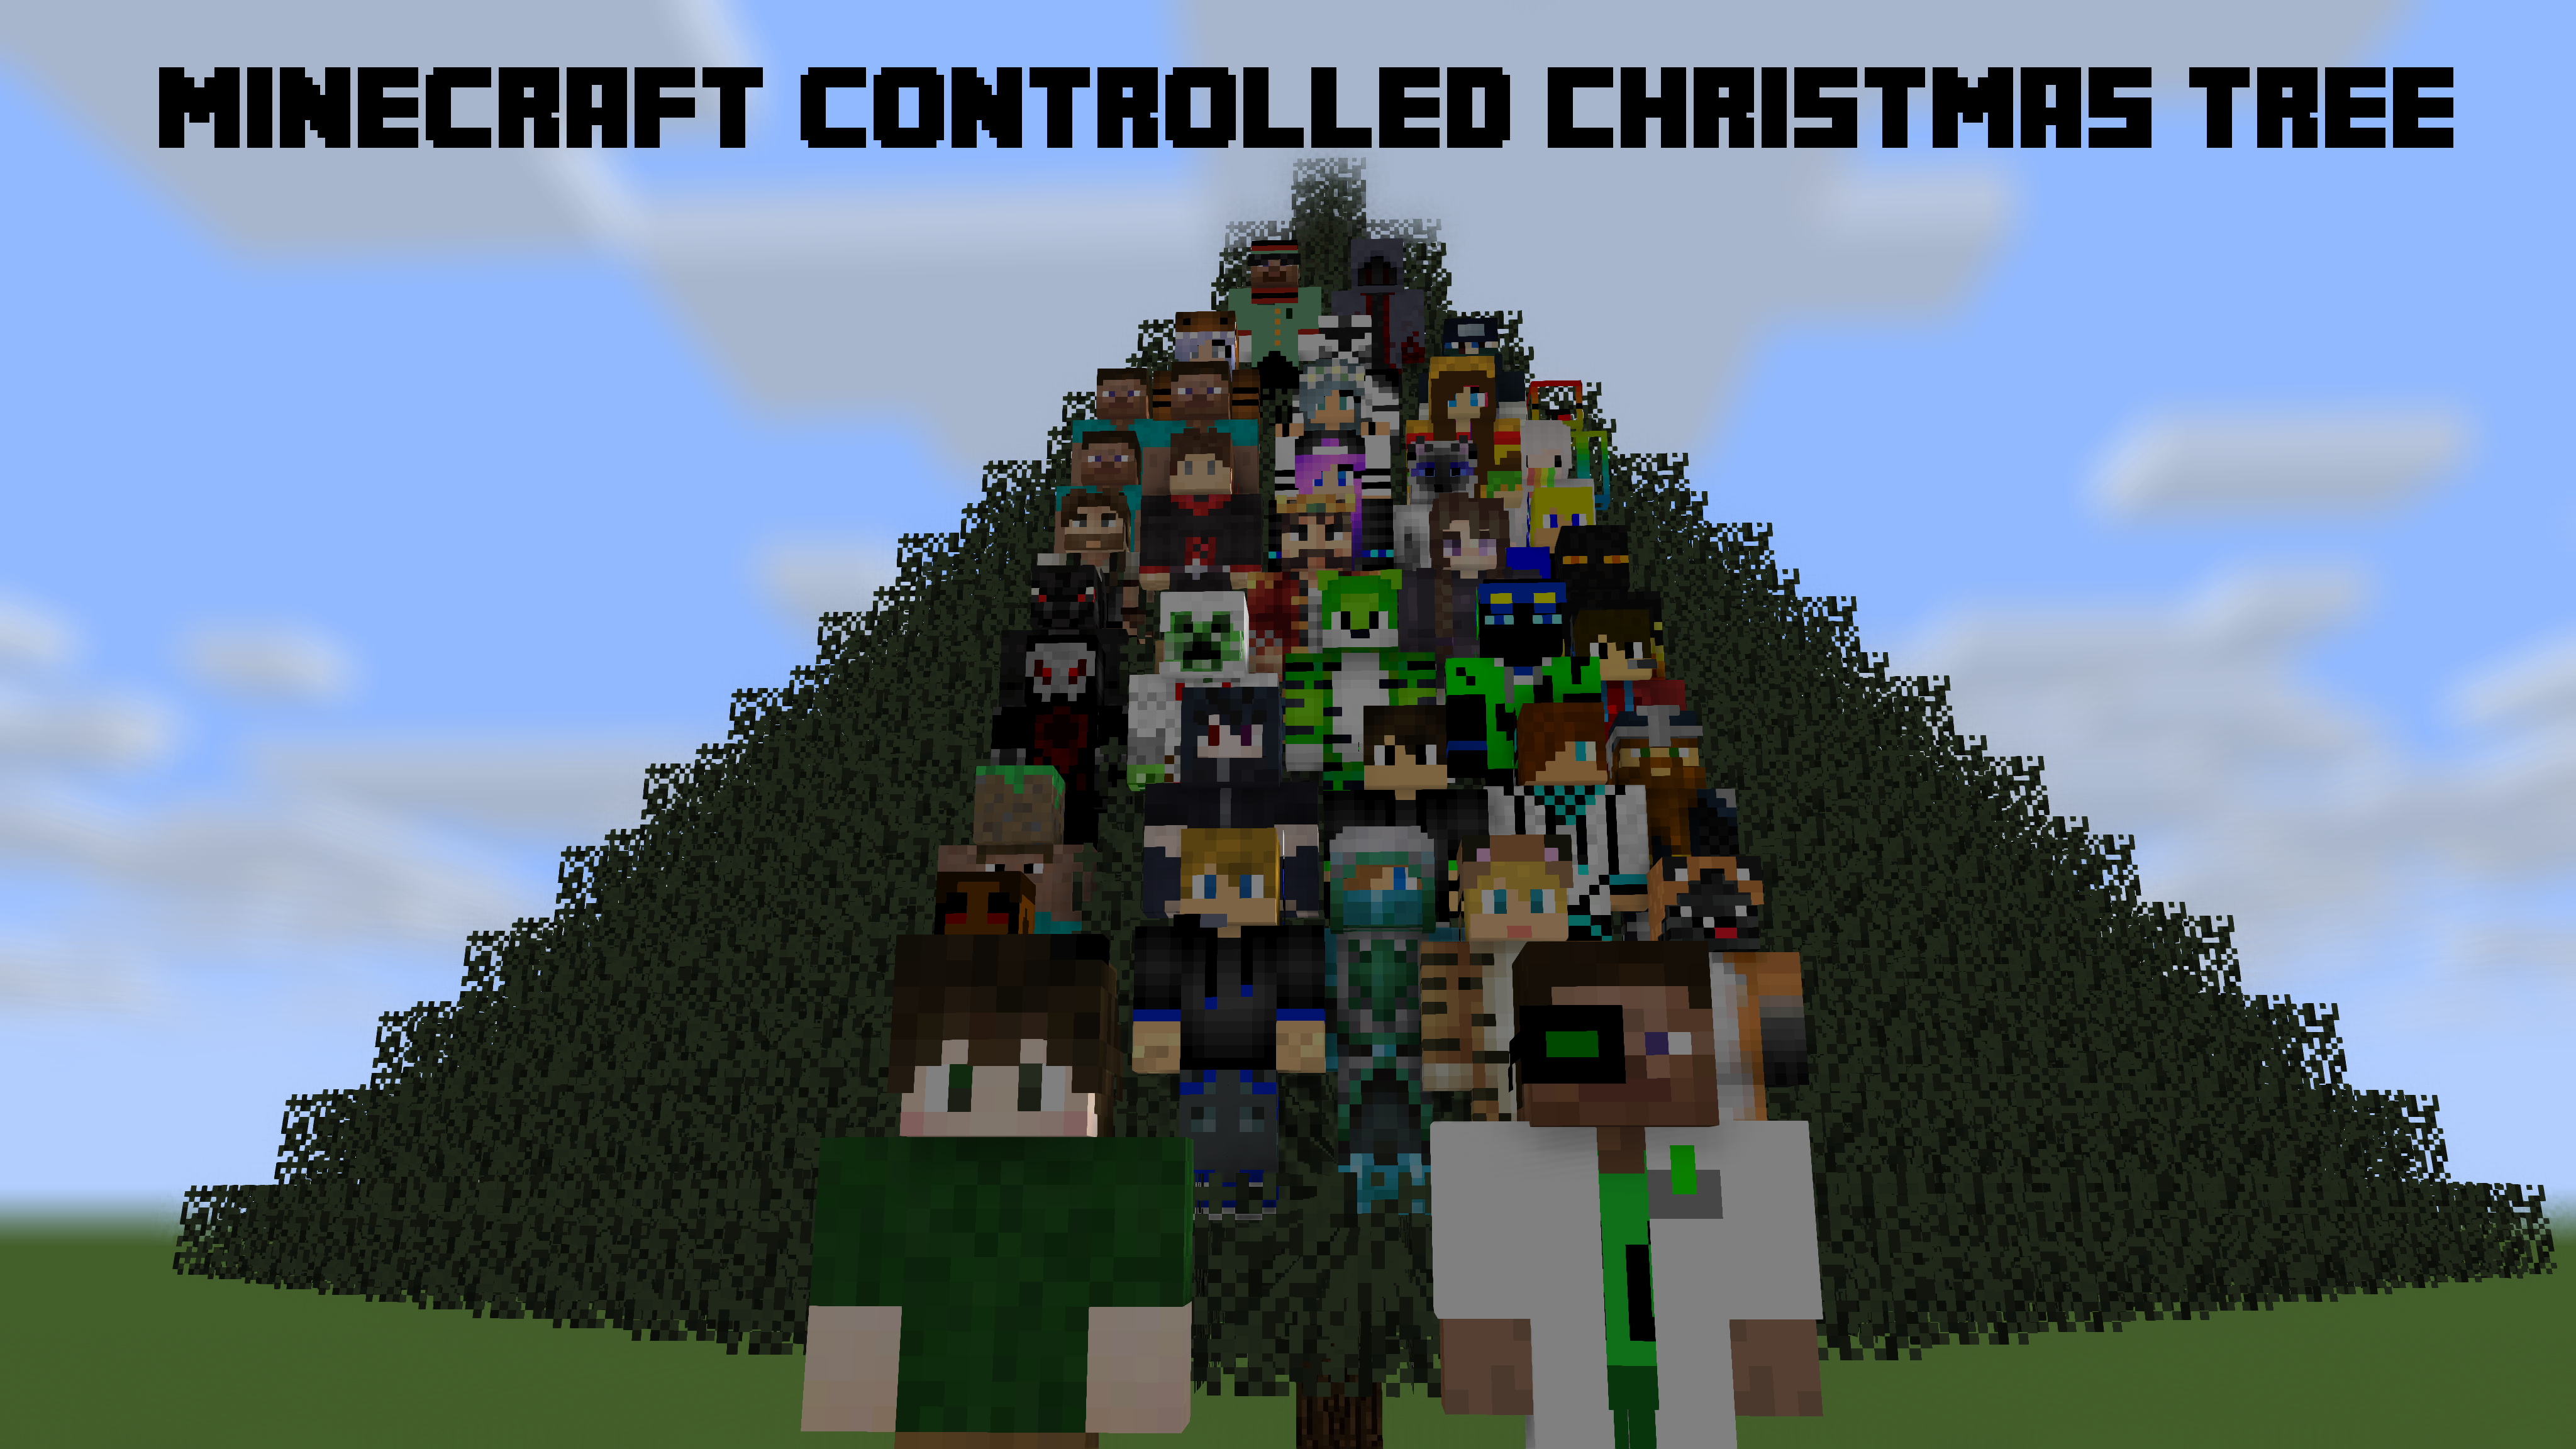 Minecraft Controlled Christmas Tree: 40 Players by Dlljs on DeviantArt